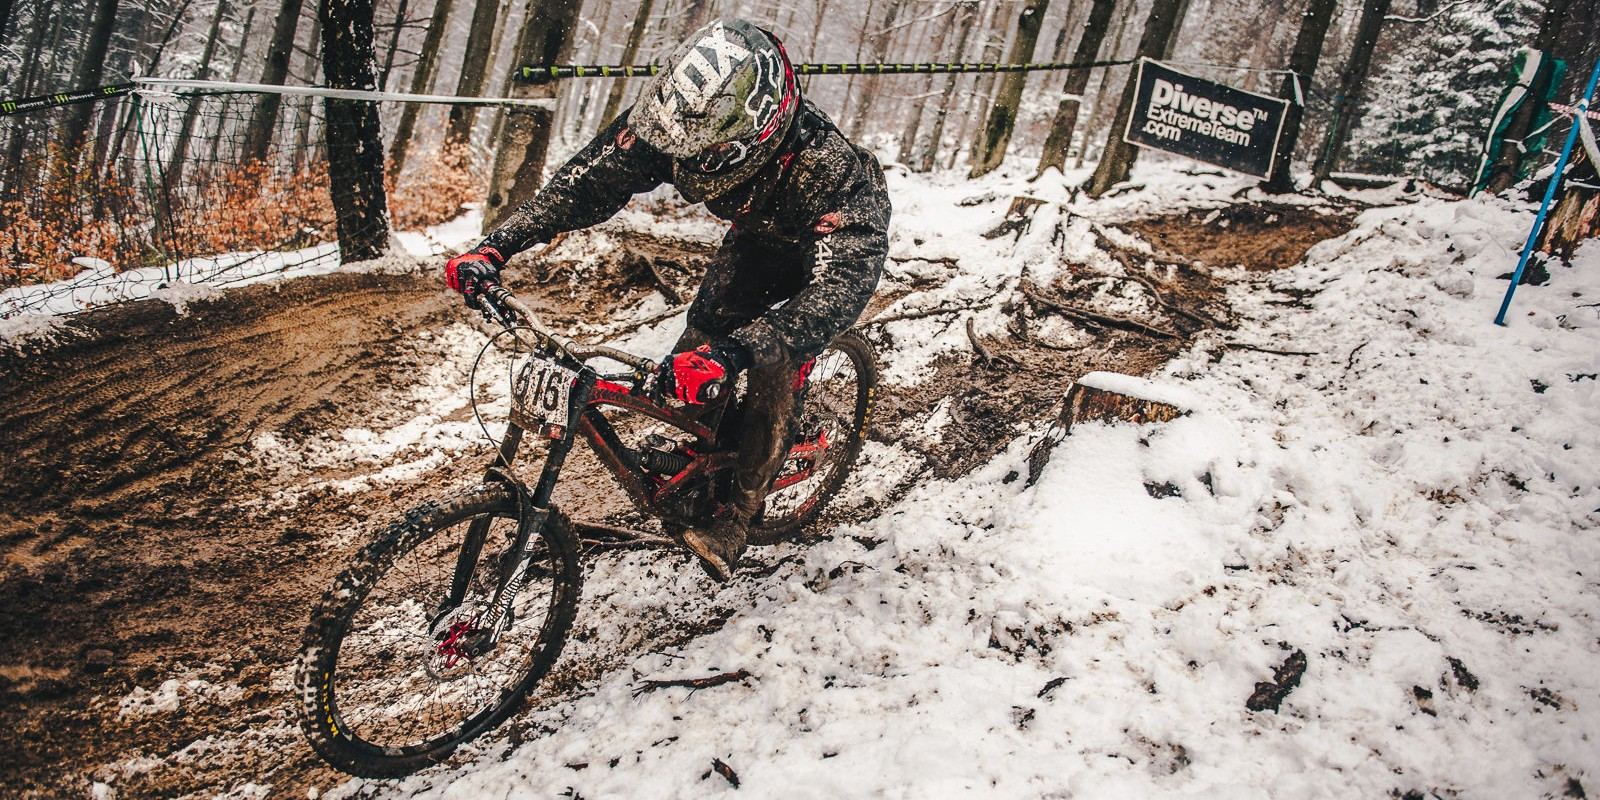 Diverse Downhill Contest 2017 Round 1 held in Wisła, Poland - action picture from final runs